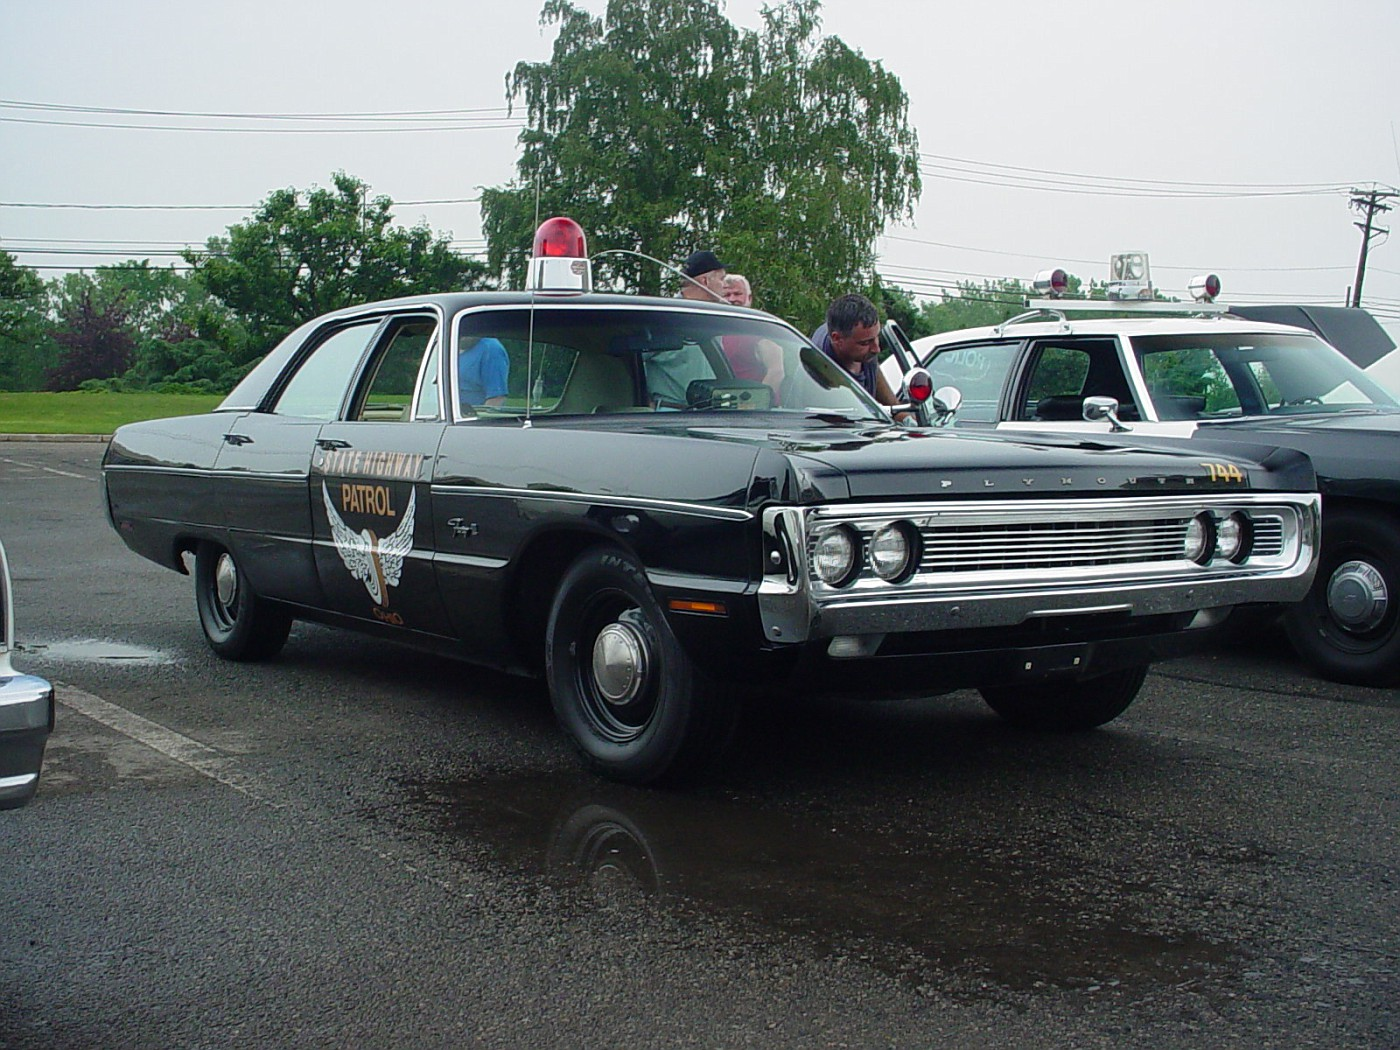 1970 MERCURY MONTEREY POLICE PACKAGE for sale - Mercury ...  |1970 Police Cars Florida